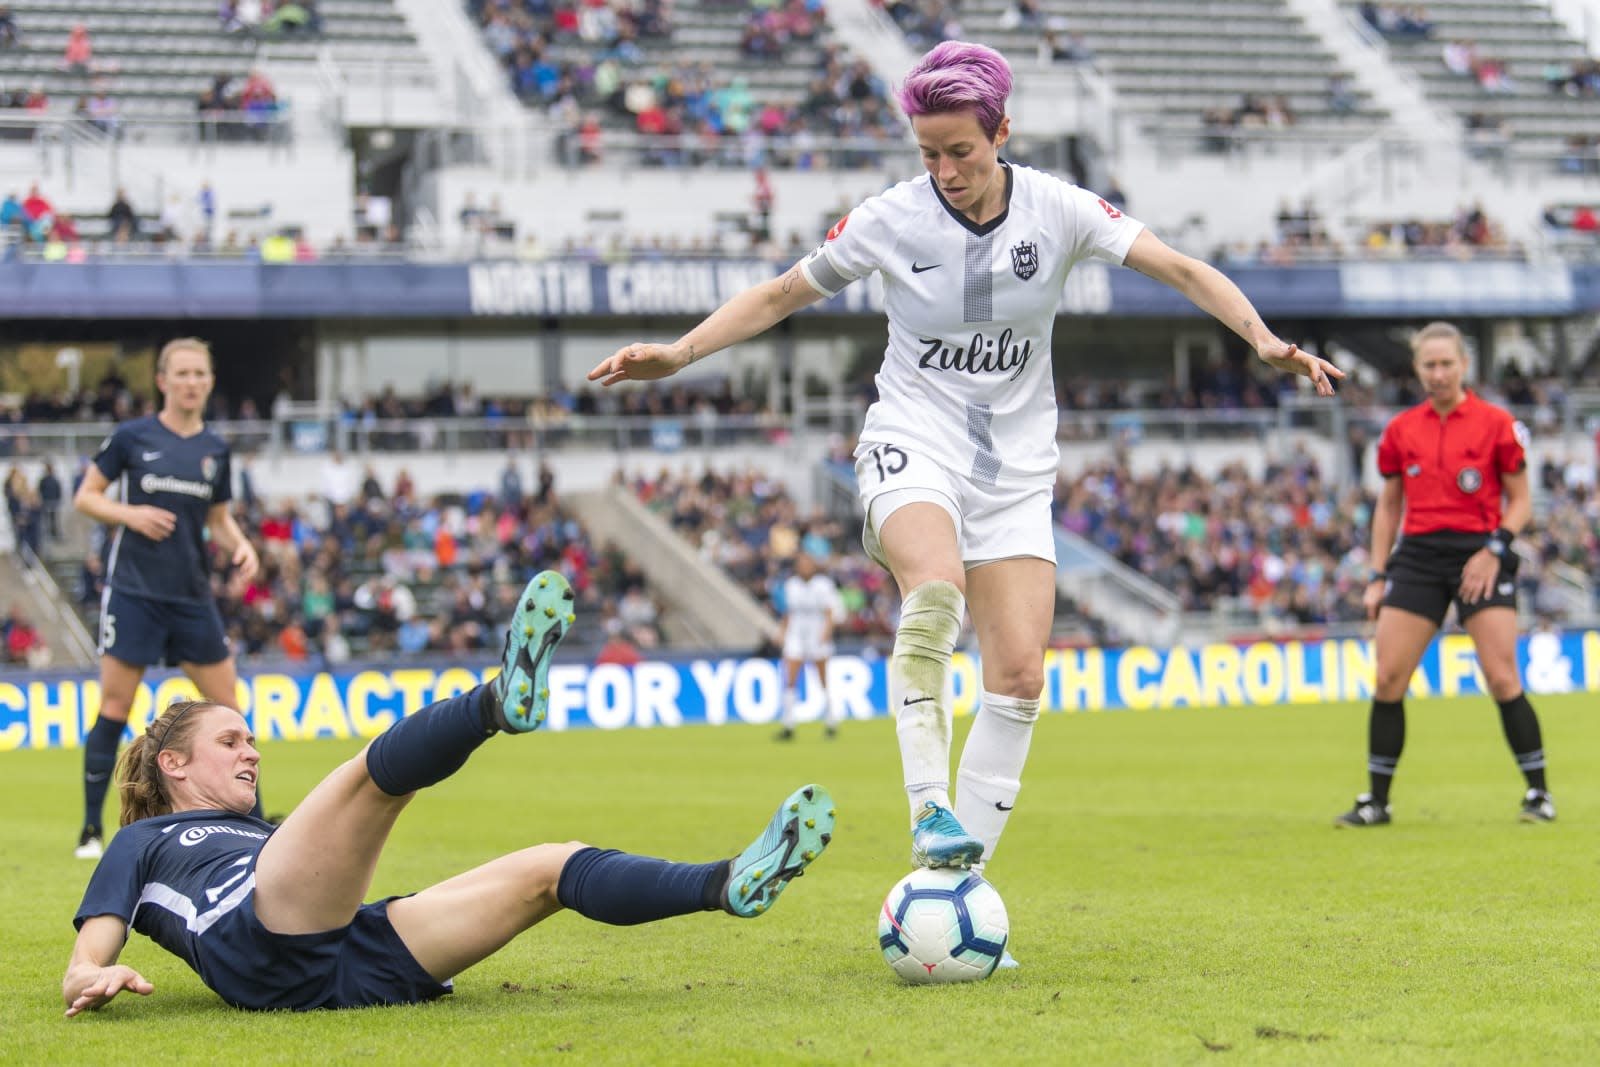 NWSL soccer matches will stream on CBS All Access and Twitch | Engadget